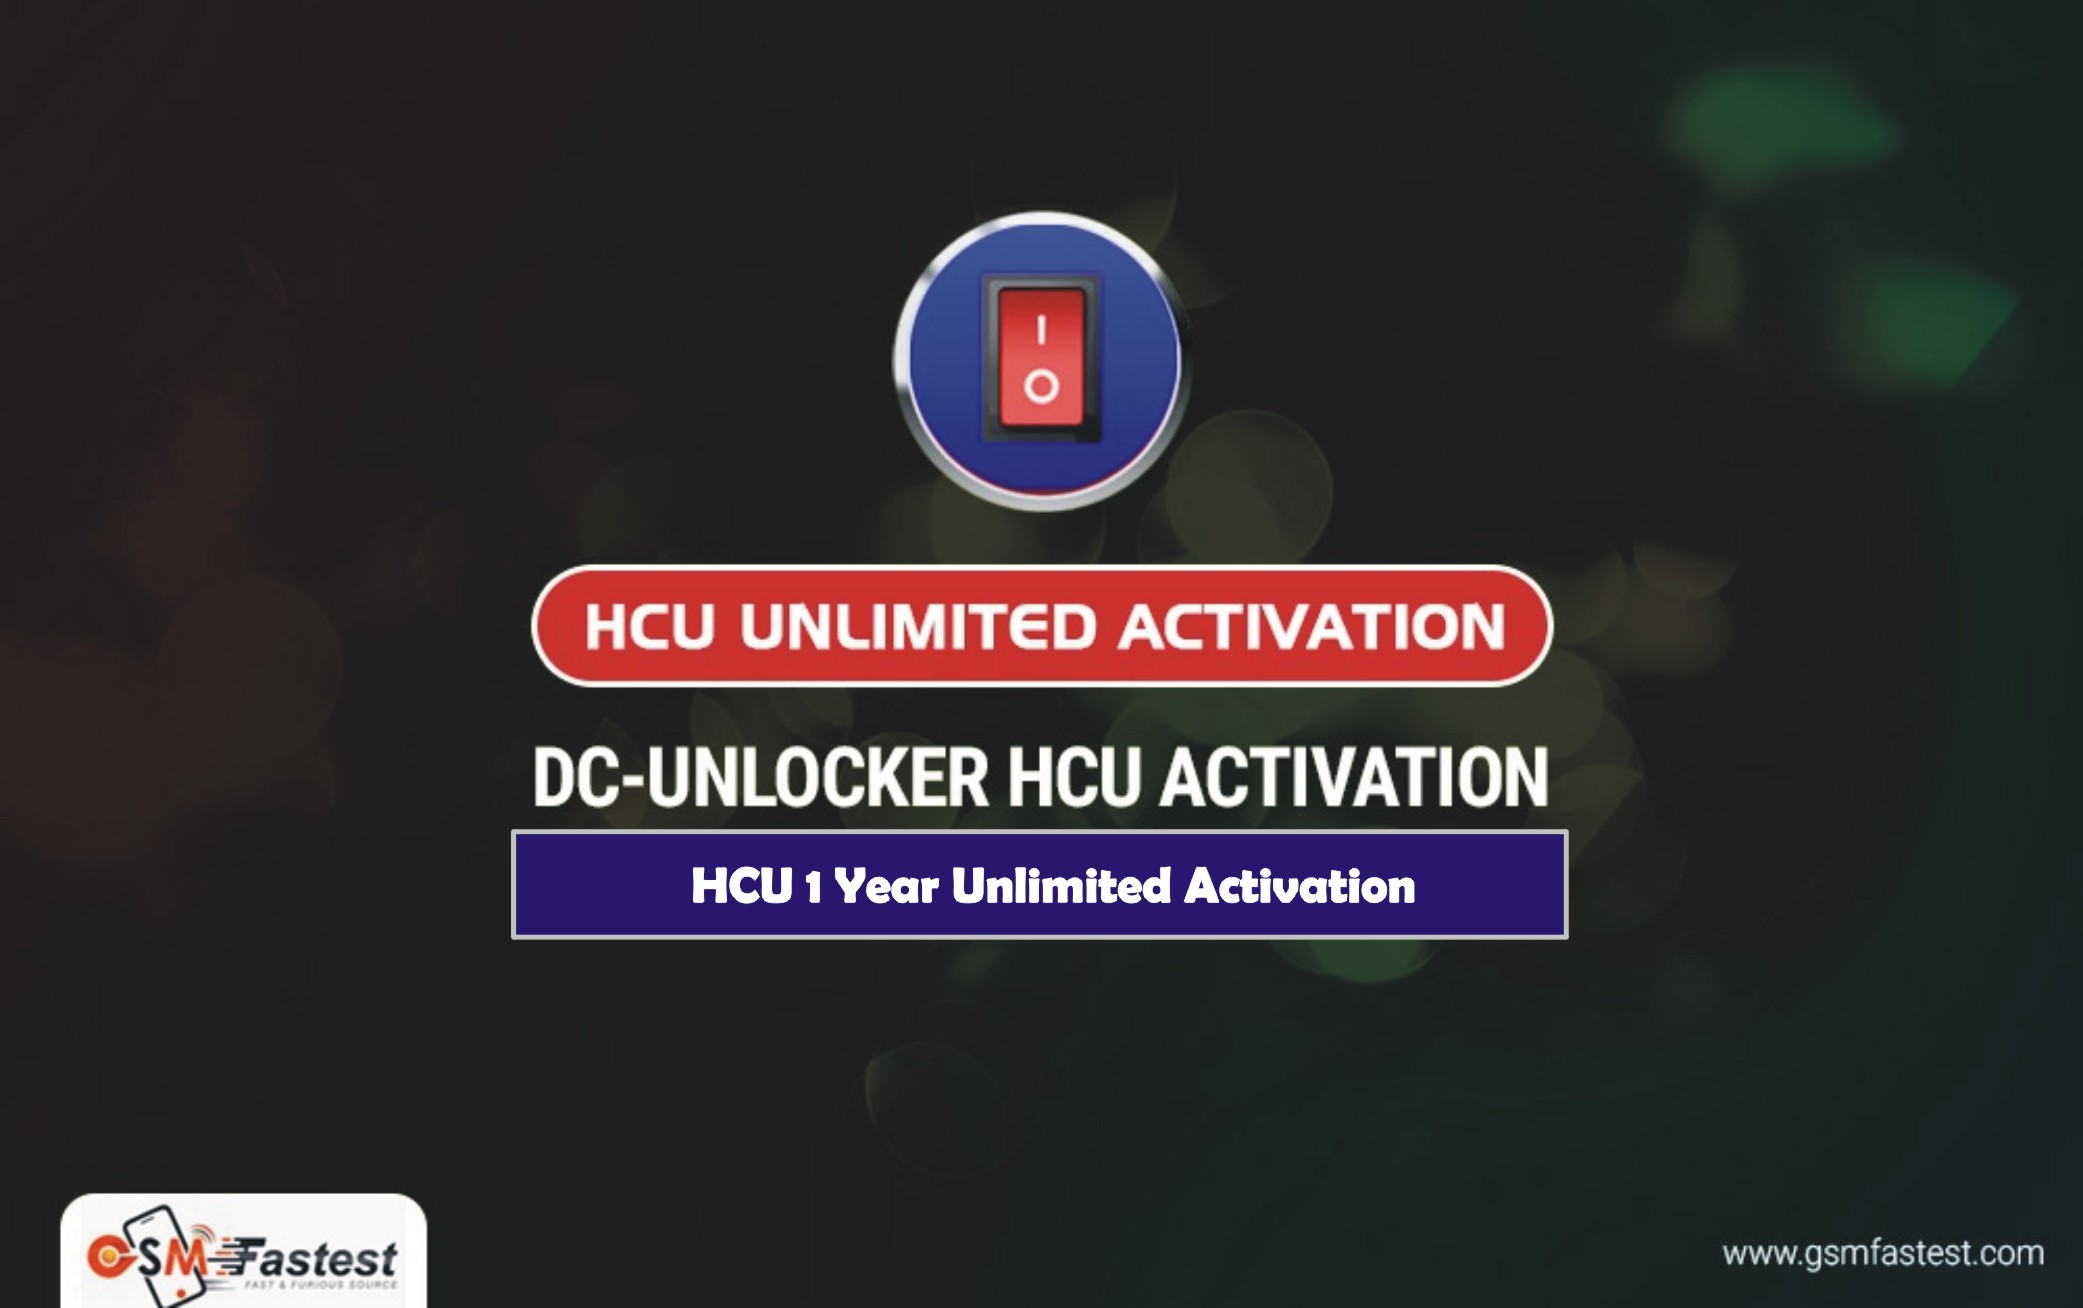 HCU Unlimited Activation For 1 Year